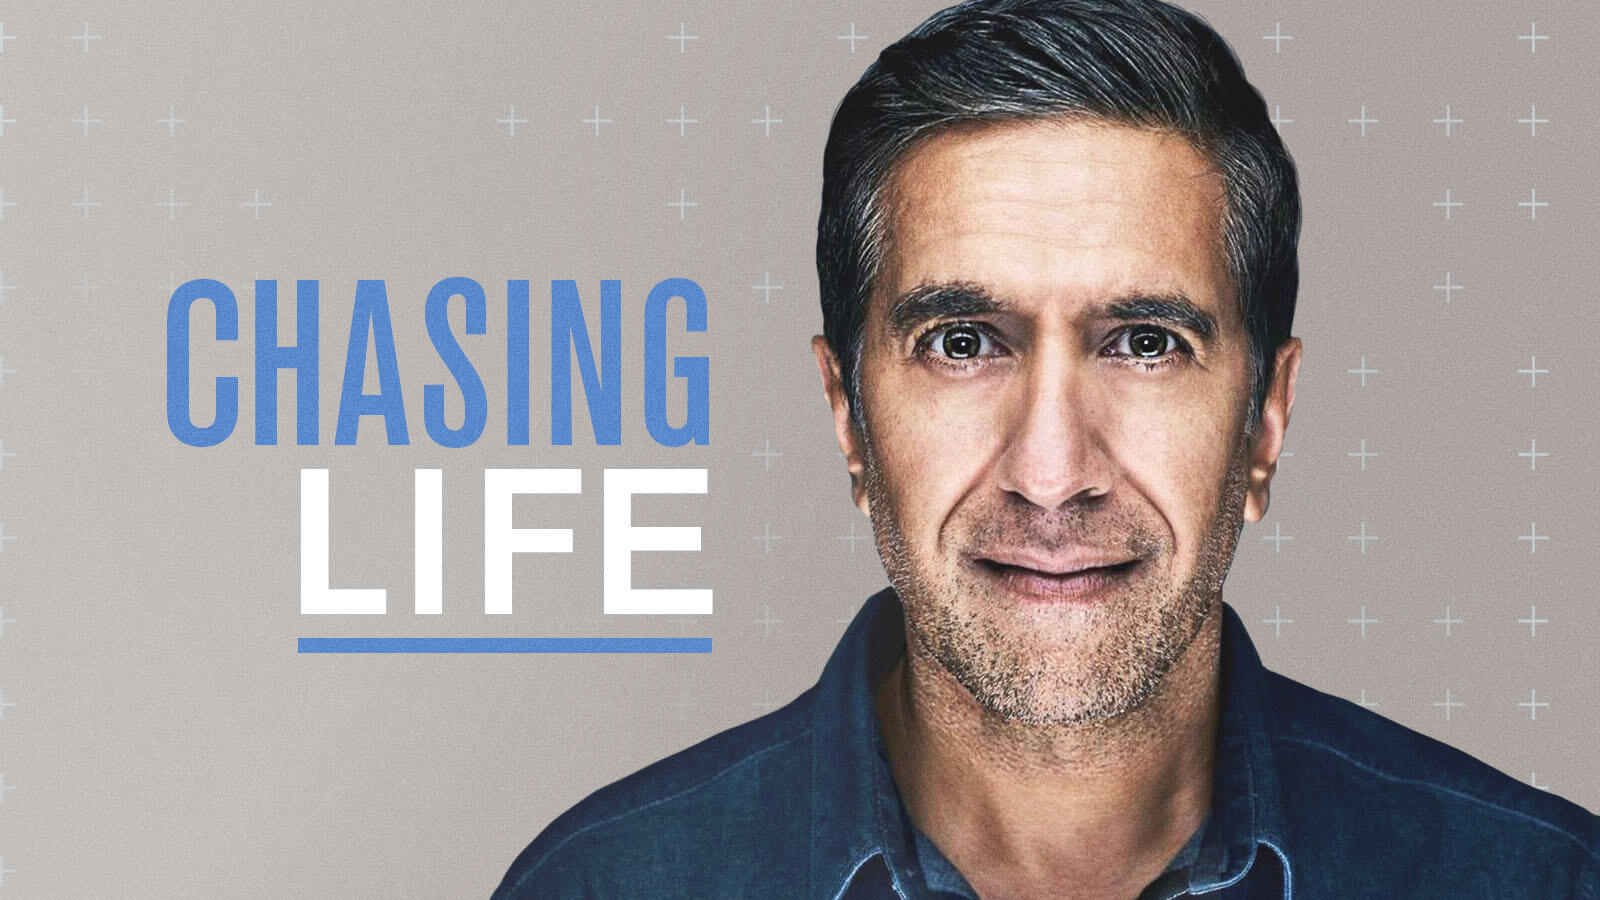 chasing life captis executive search management consulting leadership board services